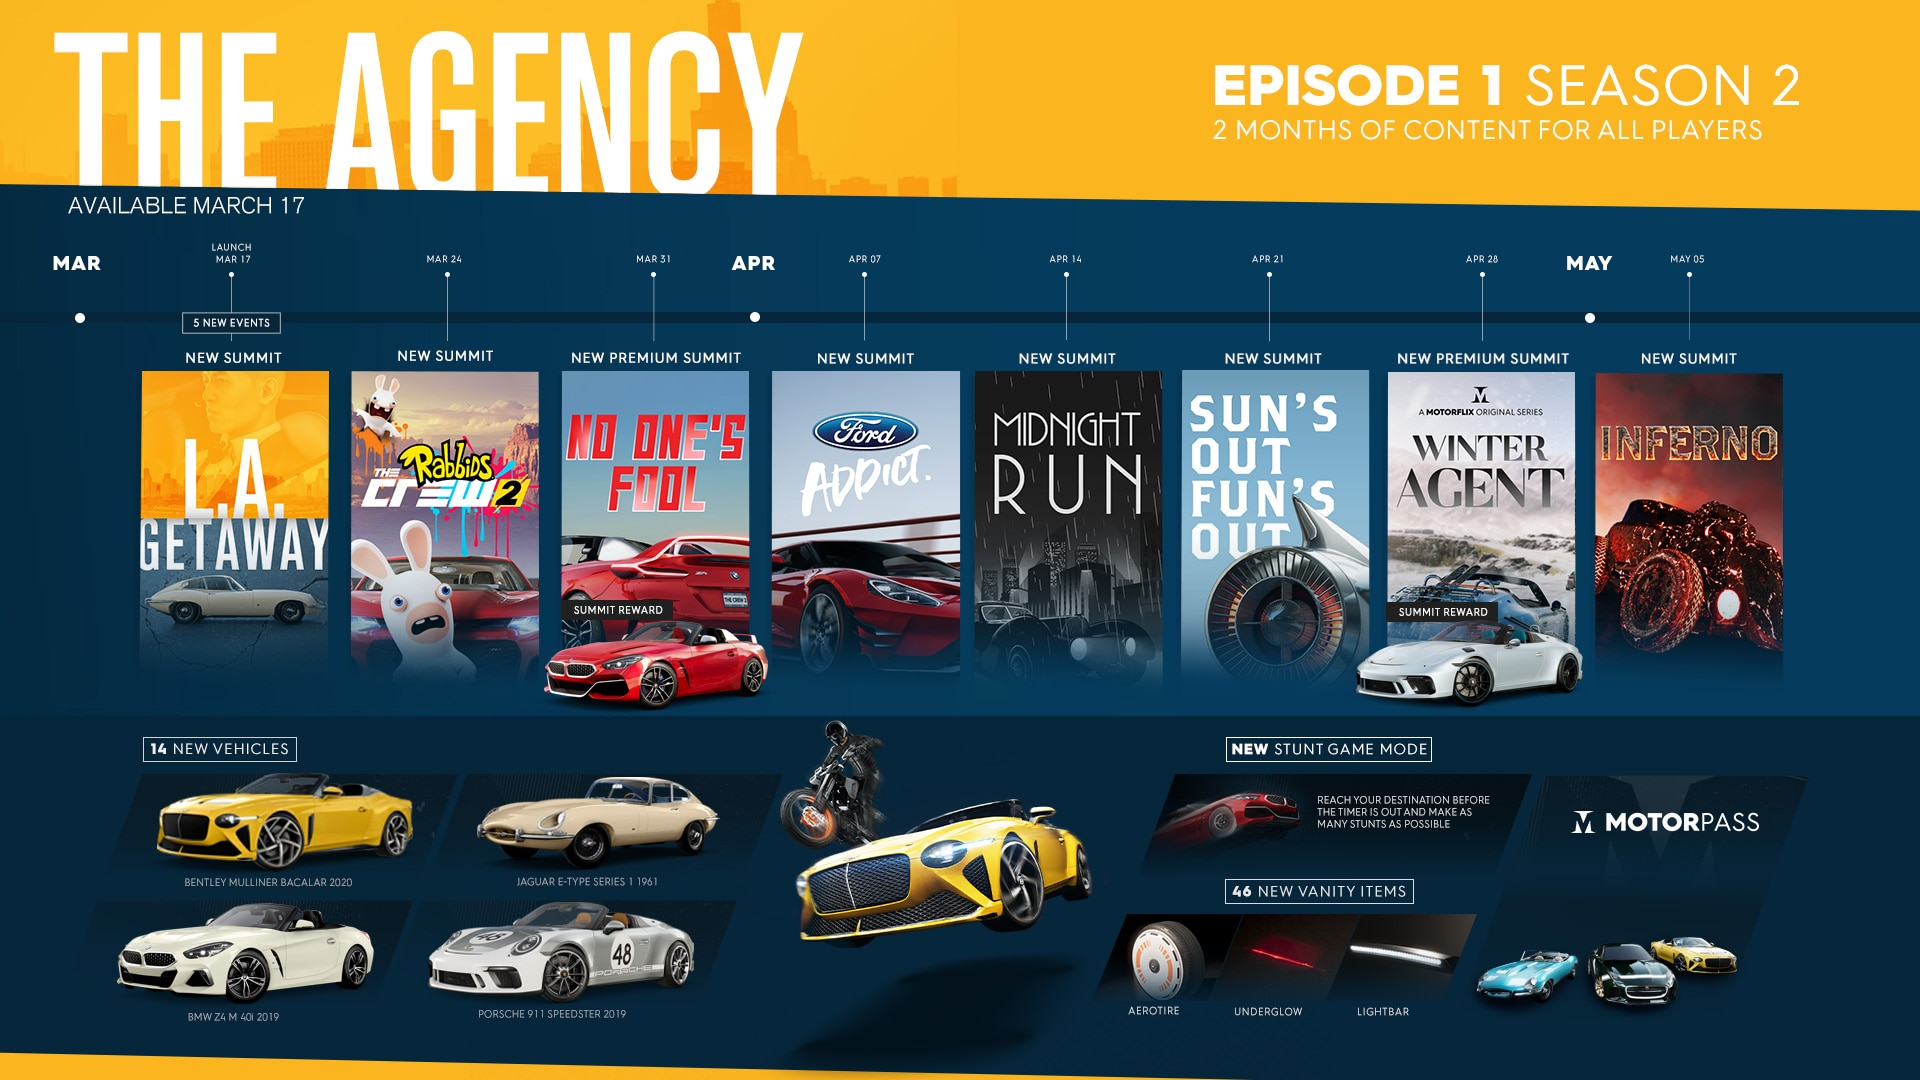 TC2_THE_AGENCY_CONTENT_1920x1080